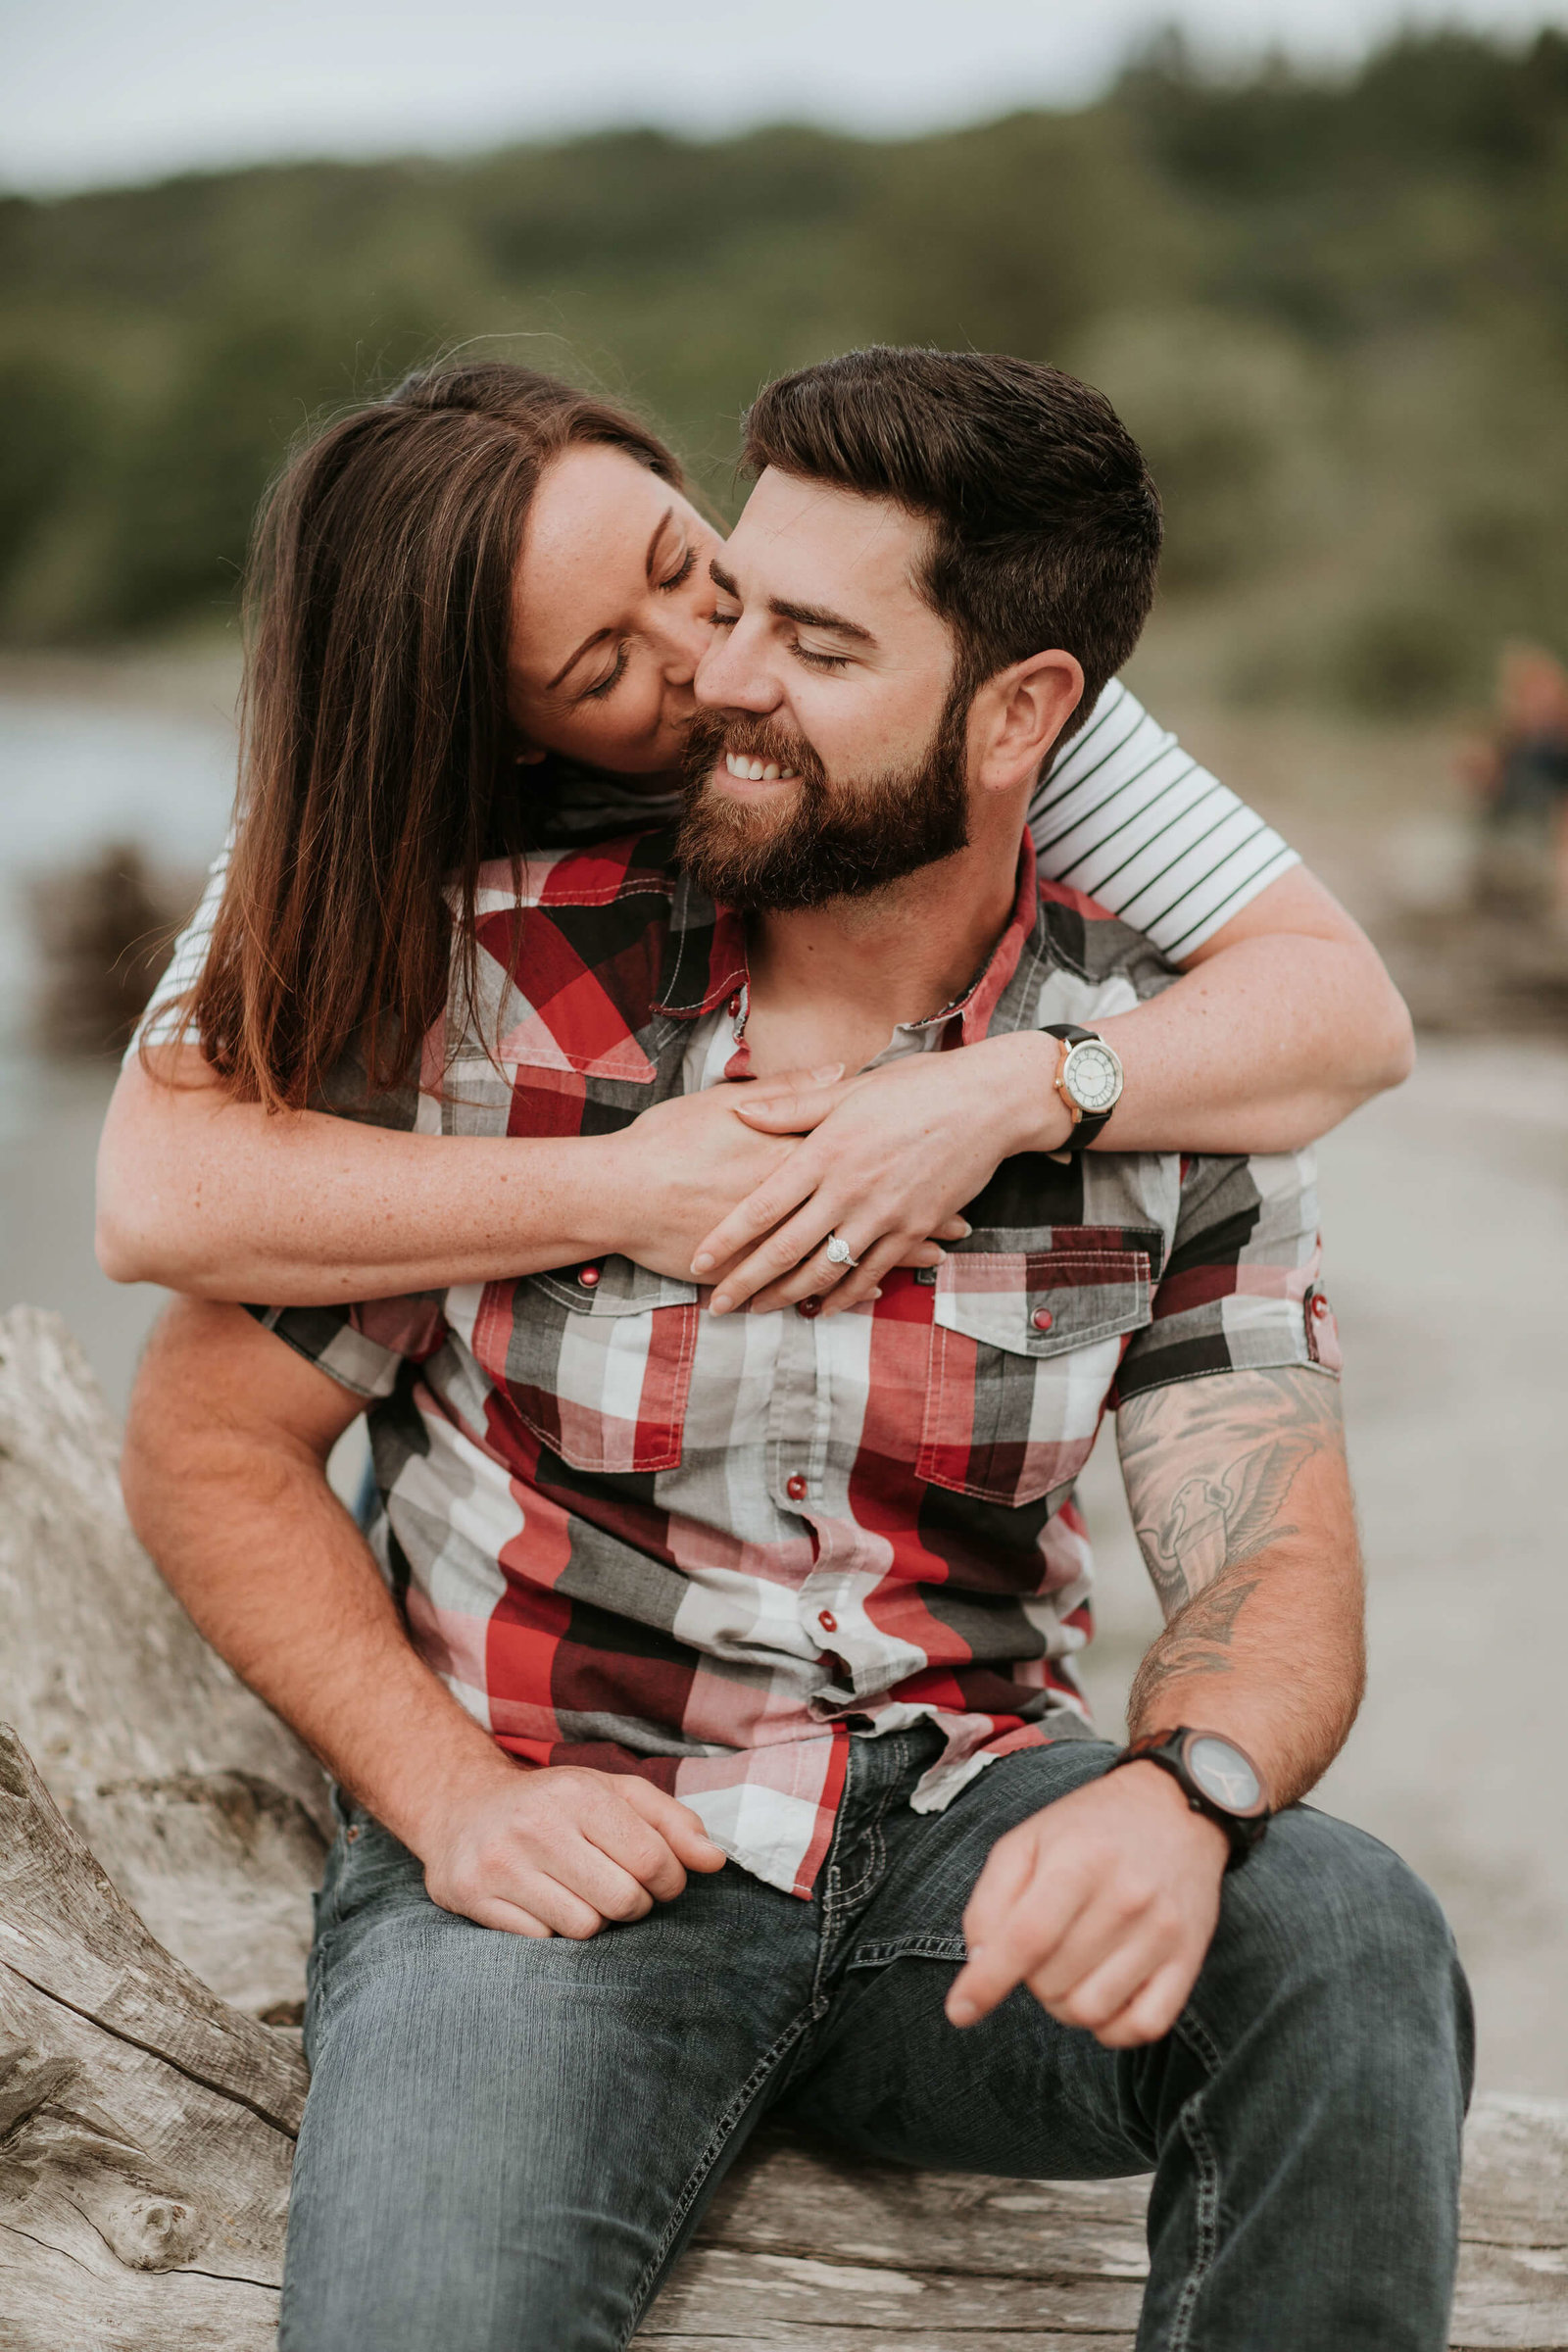 Discovery-Park-Engagement-Chelsey+Troy-by-Adina-Preston-Photography-2019-53